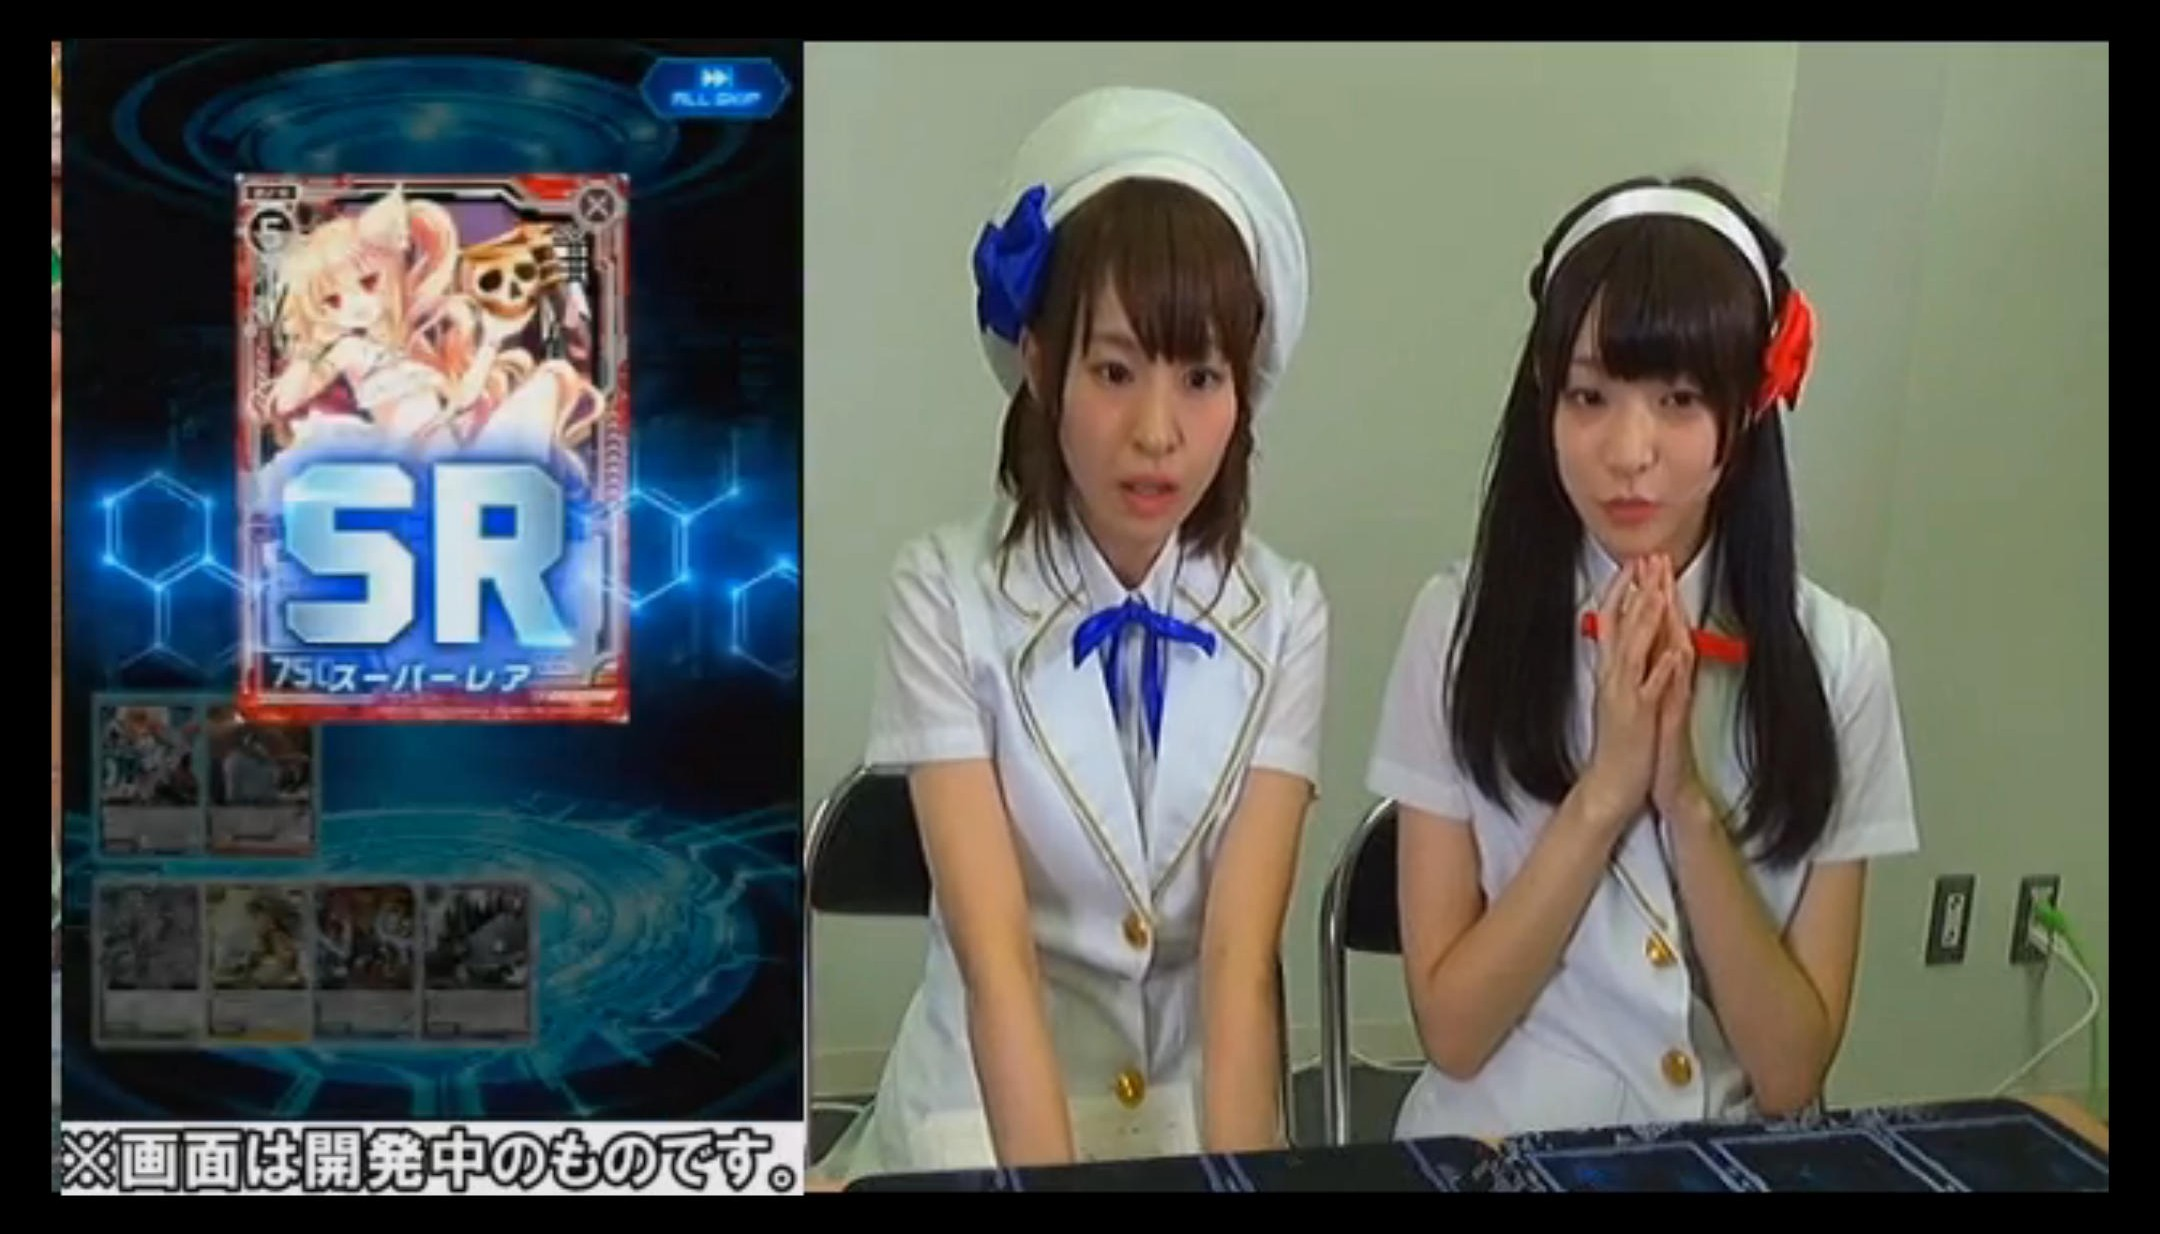 zx-ignition-broadcast-170712-045.jpg